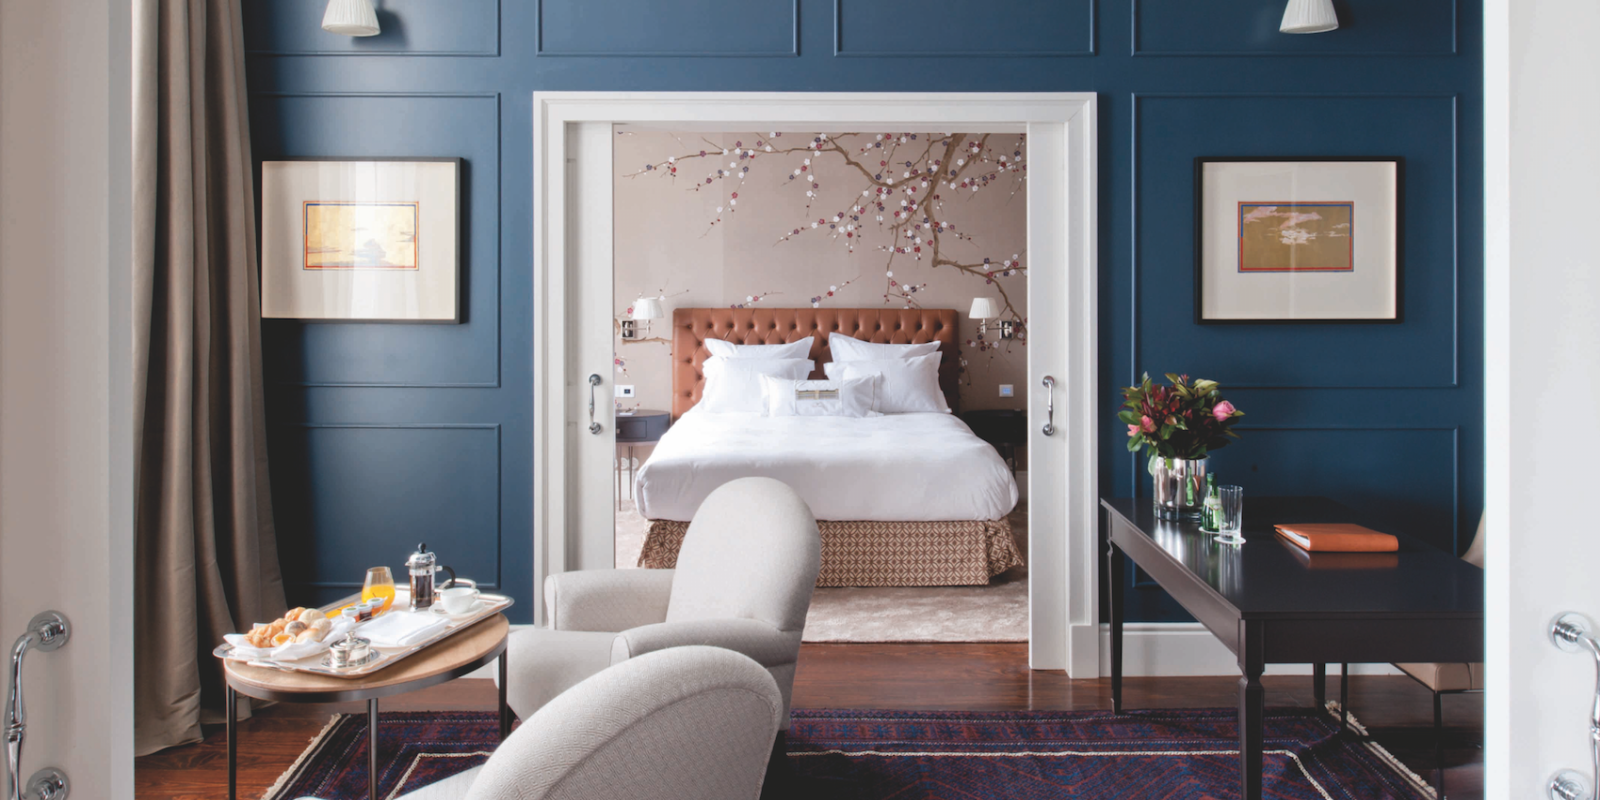 In Her New Book, A Travel And Design Writer Highlights Striking Hotel  Bedrooms, Living Spaces, Libraries, And Bathrooms. In This Case, Copying Is  Certainly ...